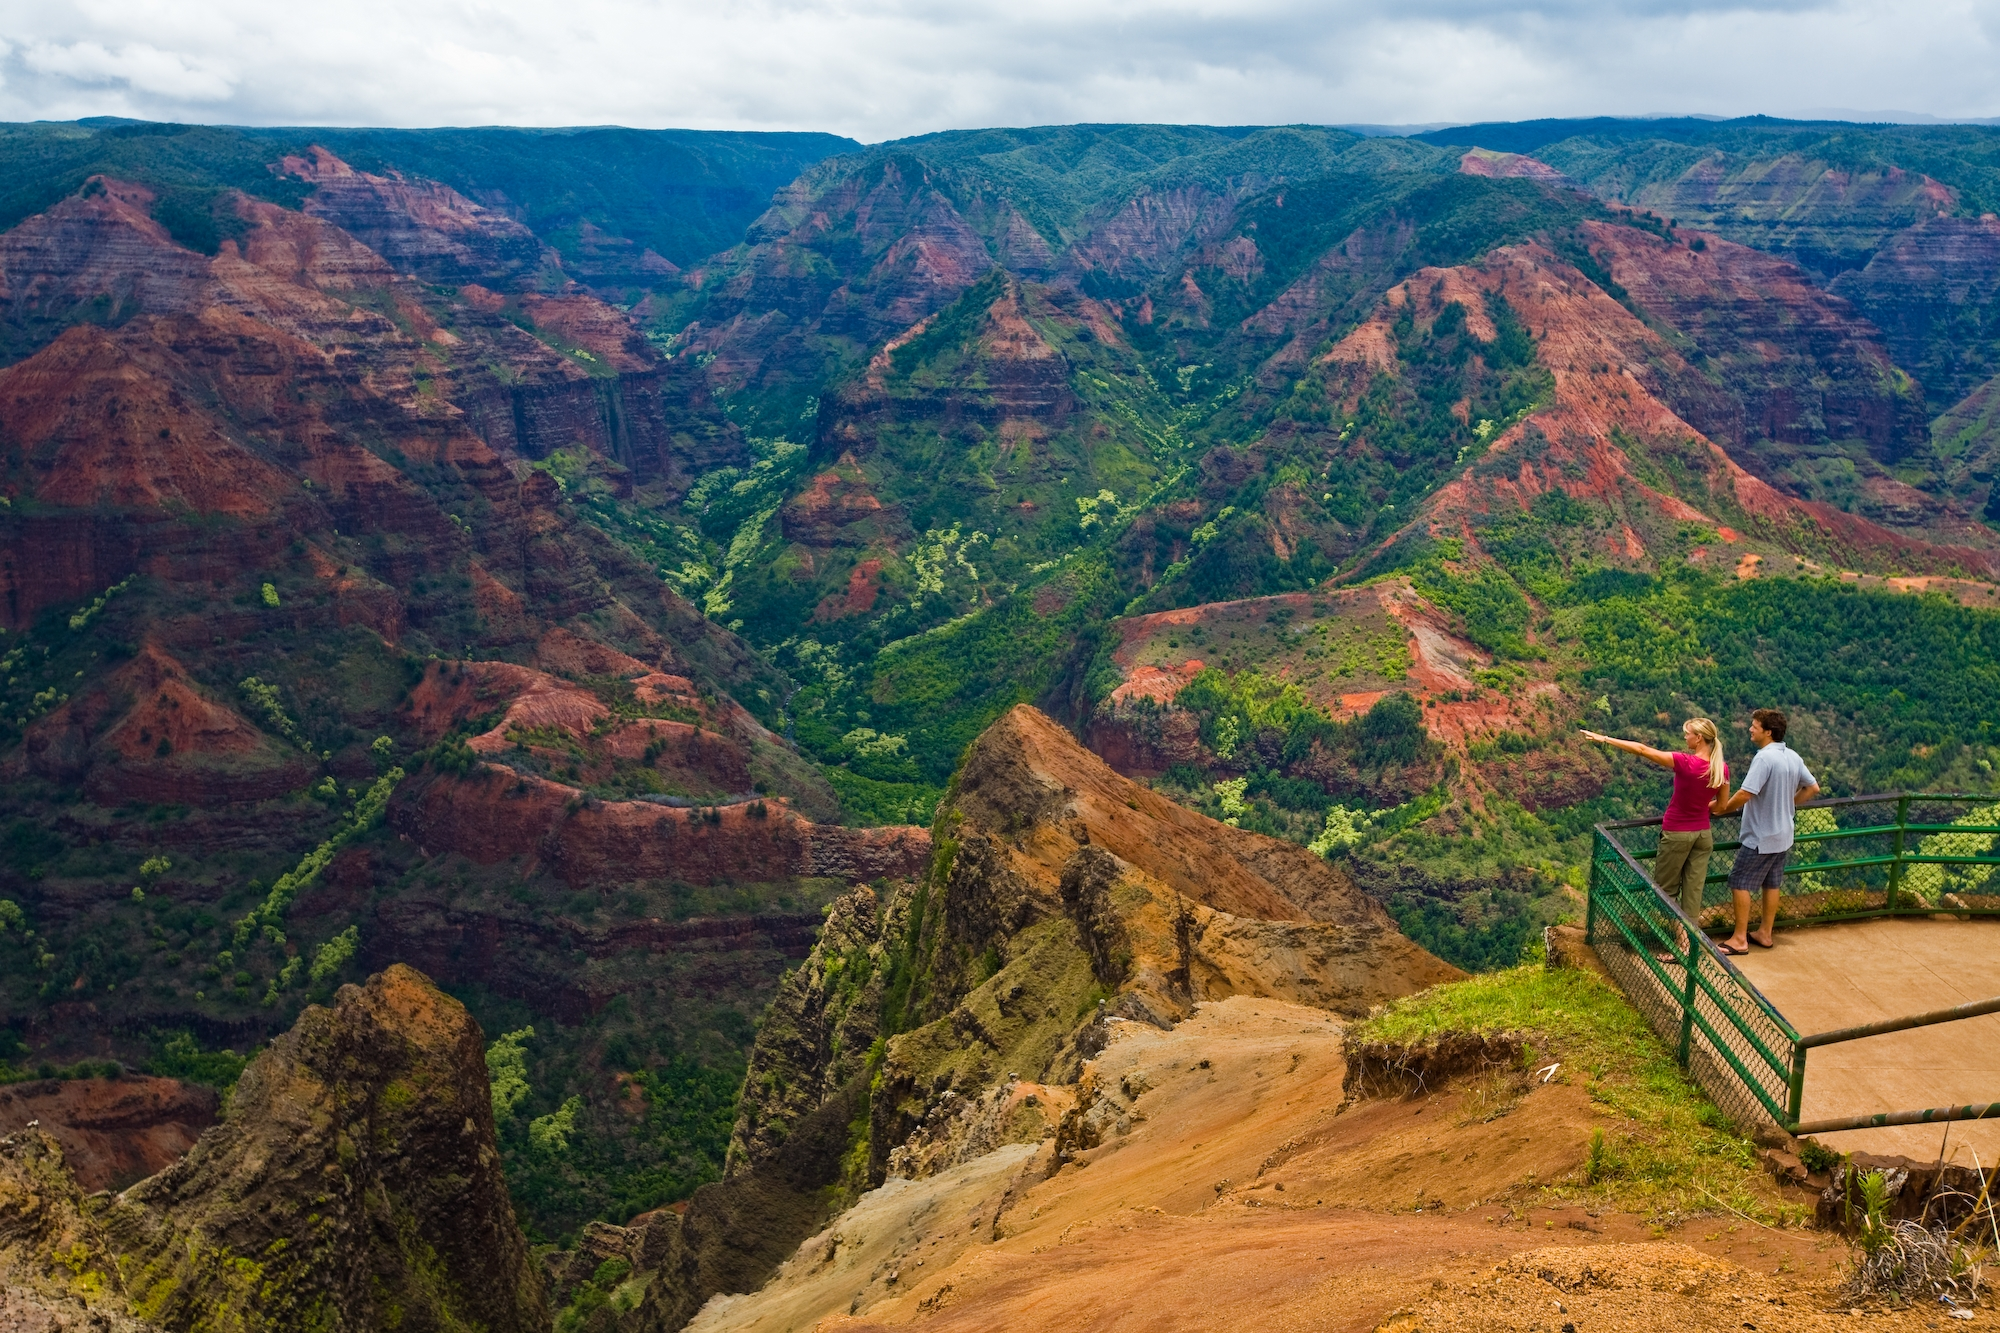 Vacation Planning. Check out our Things to Do page for recommendations for the best things to see and do on Kauai. For a sneak peek of the Island visit the Kauai Virtual Tour.